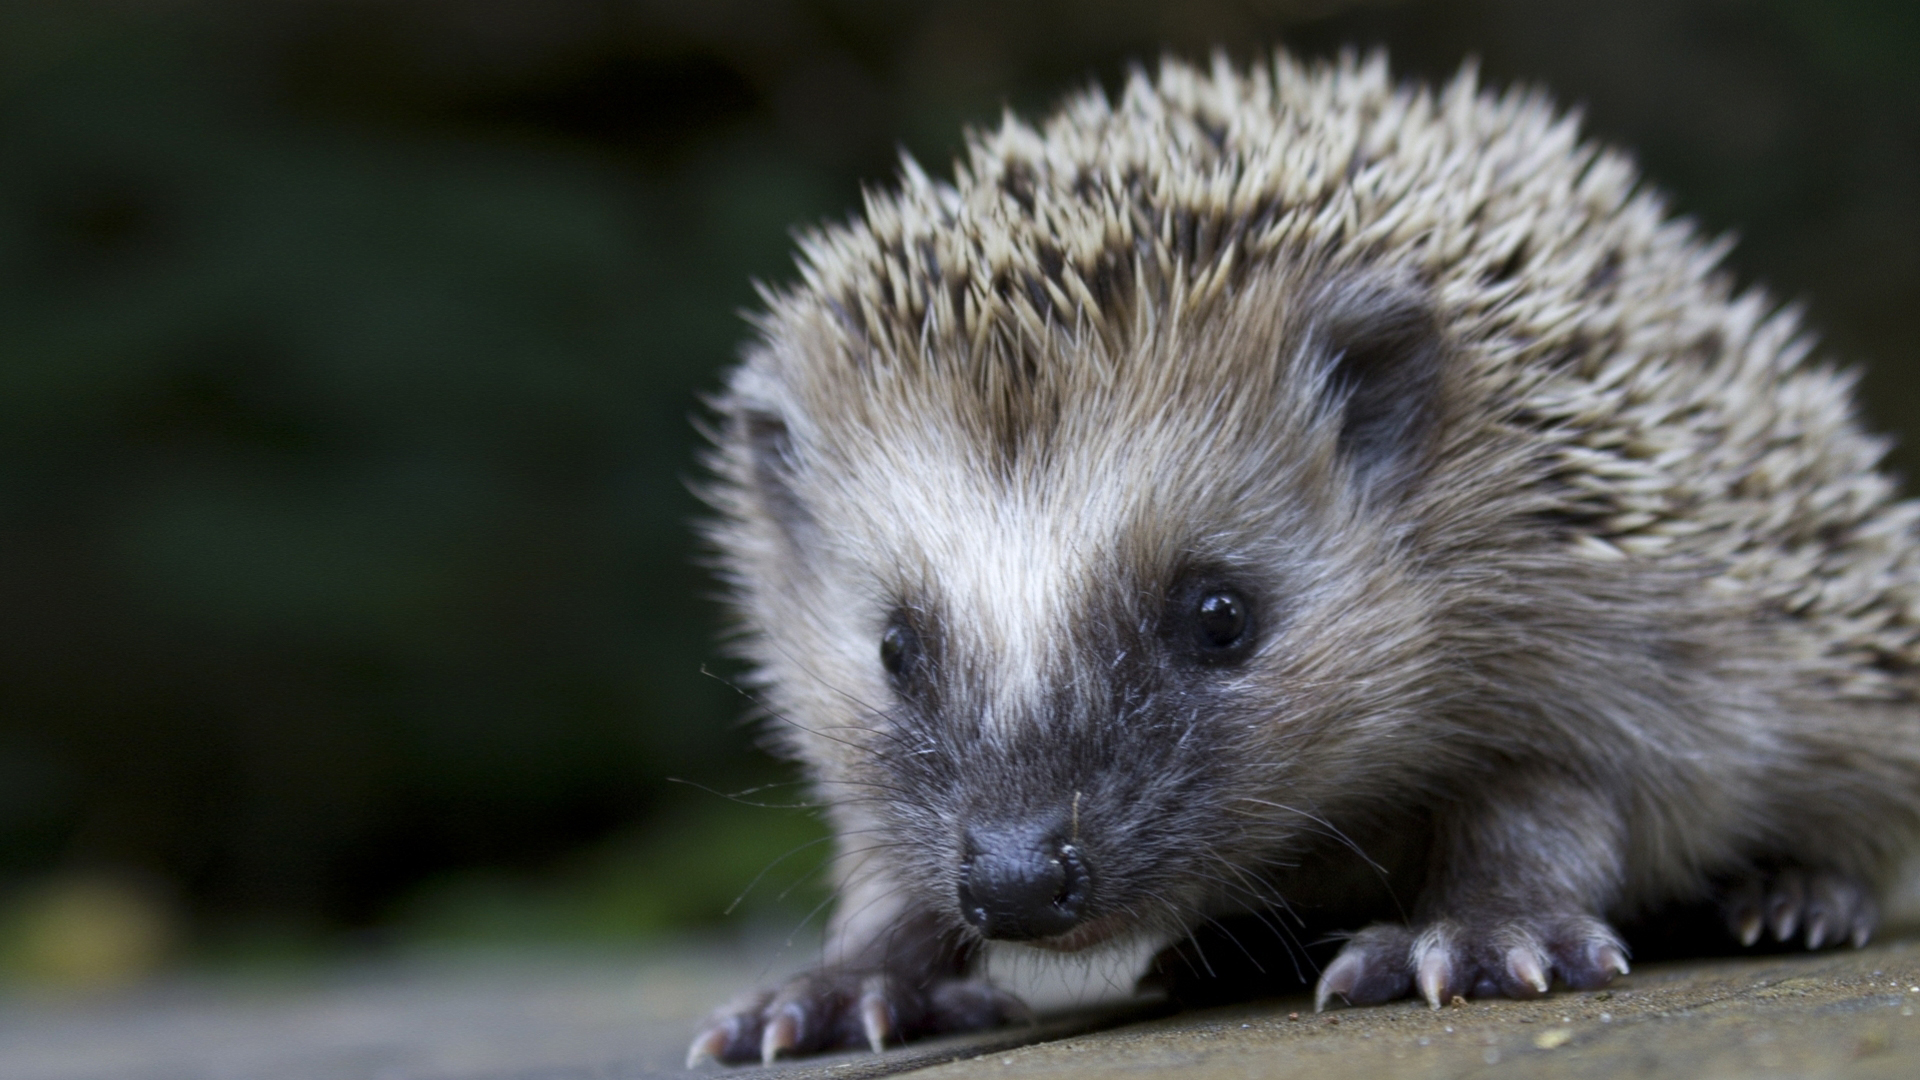 hedgehog wallpapers wallpapers high quality download free